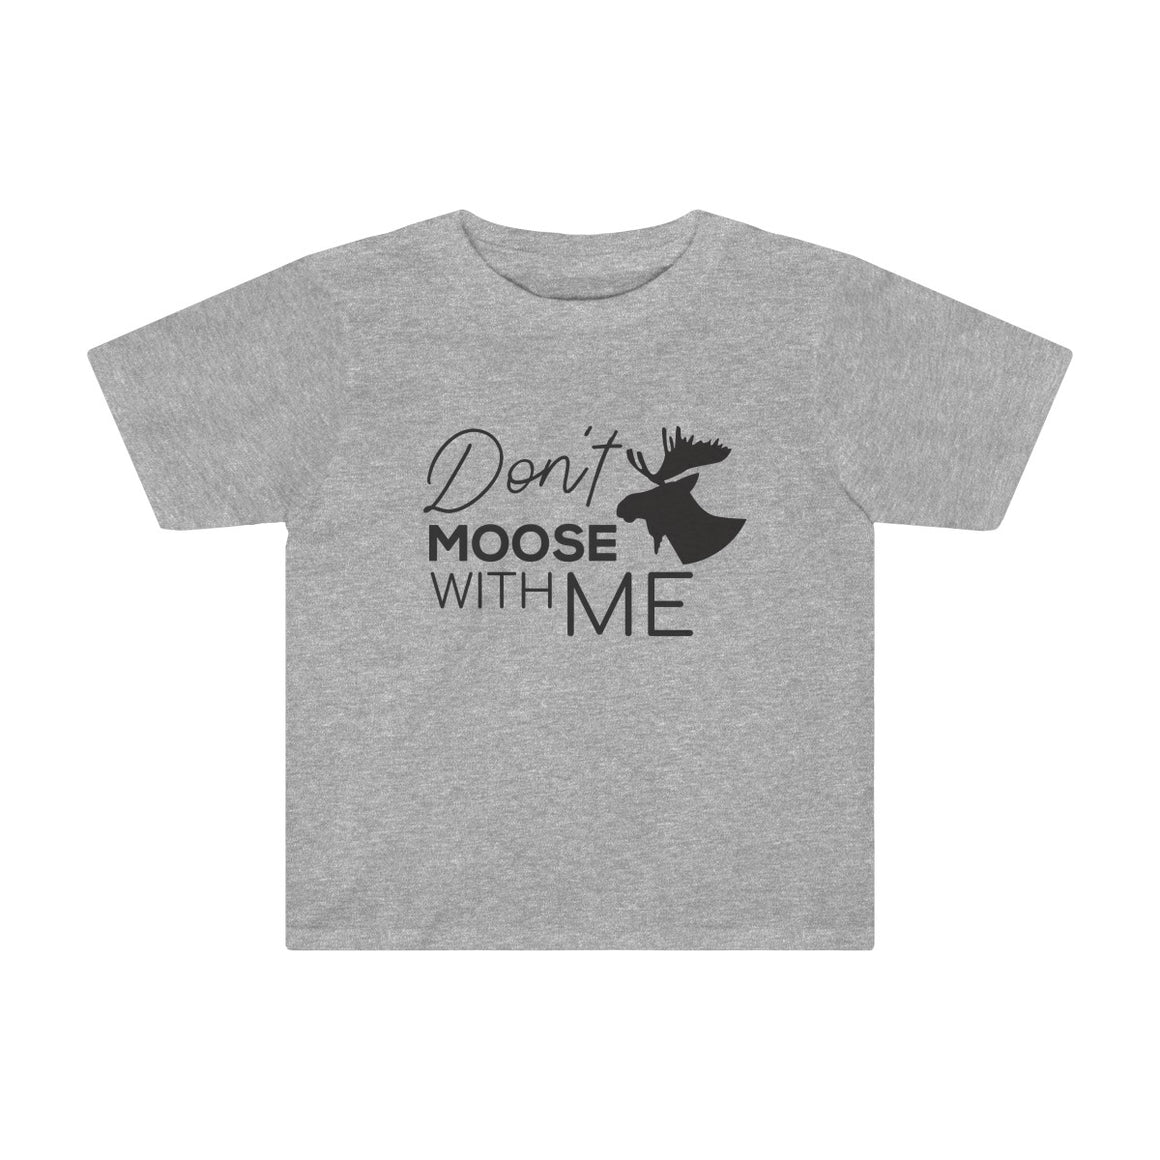 DON'T MOOSE WITH ME Toddler Tee